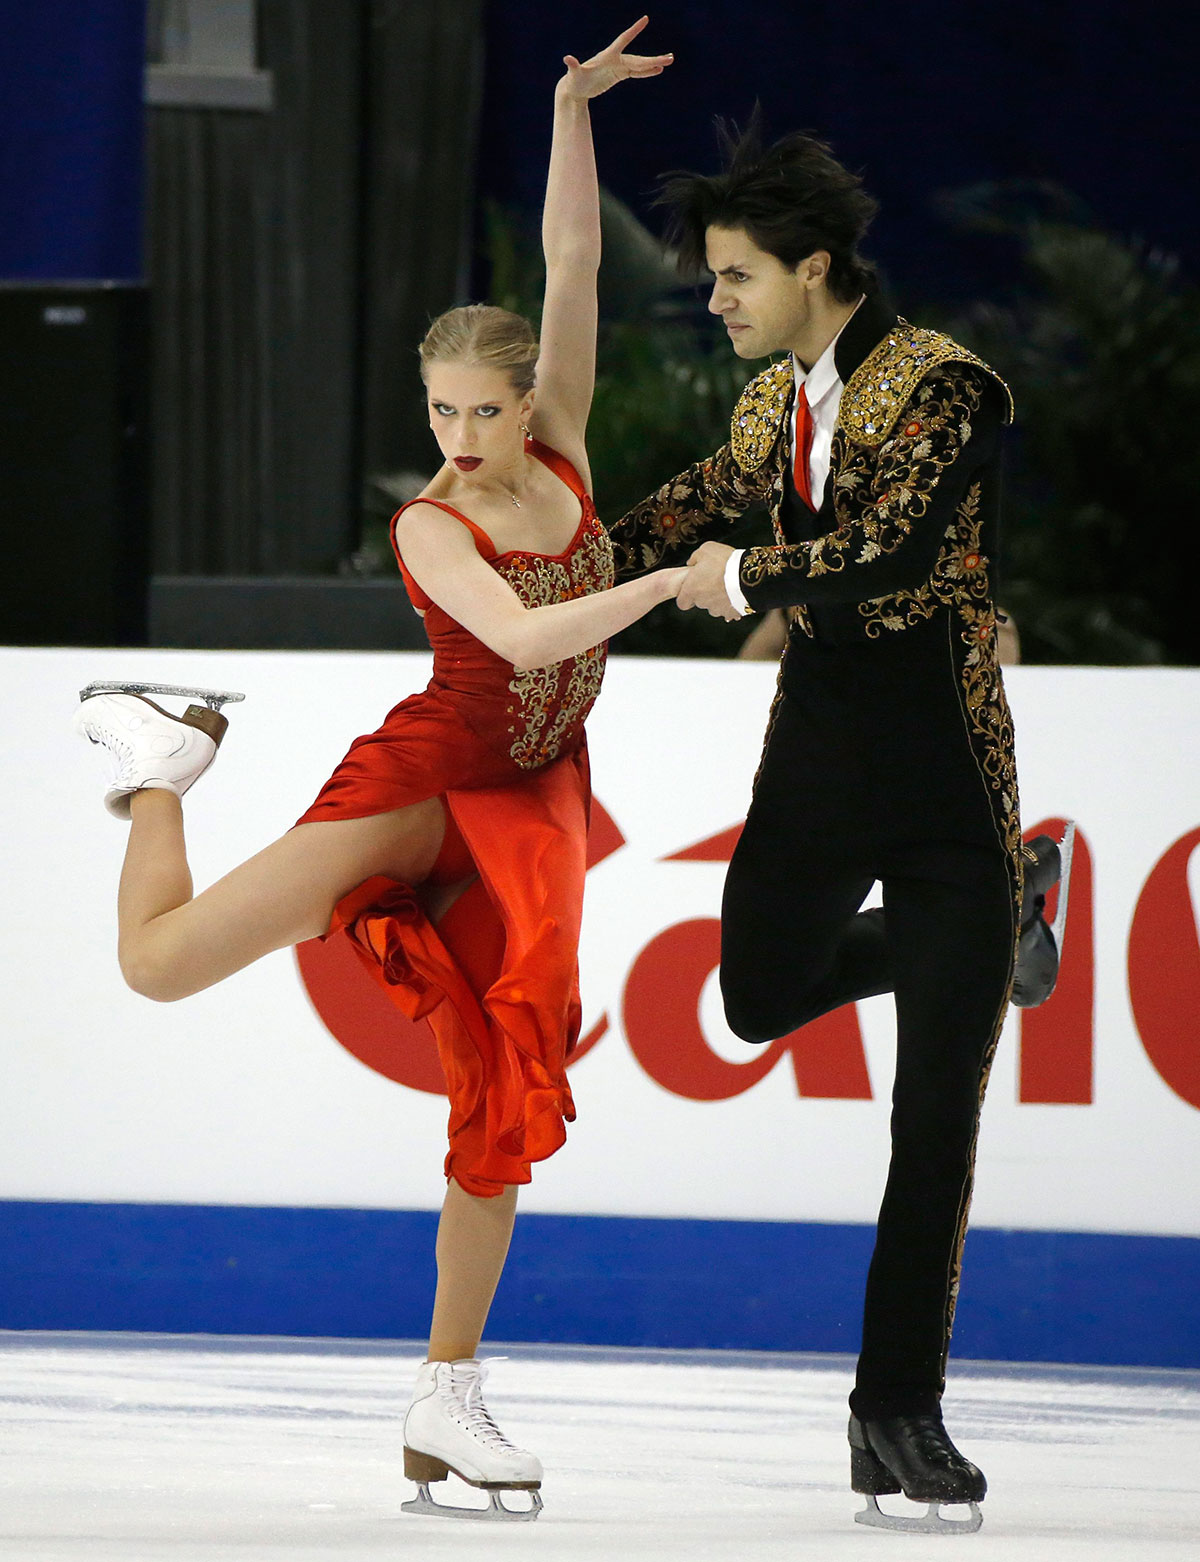 Kaitlyn Weaver and Andrew Poje in the short dance at Shanghai.